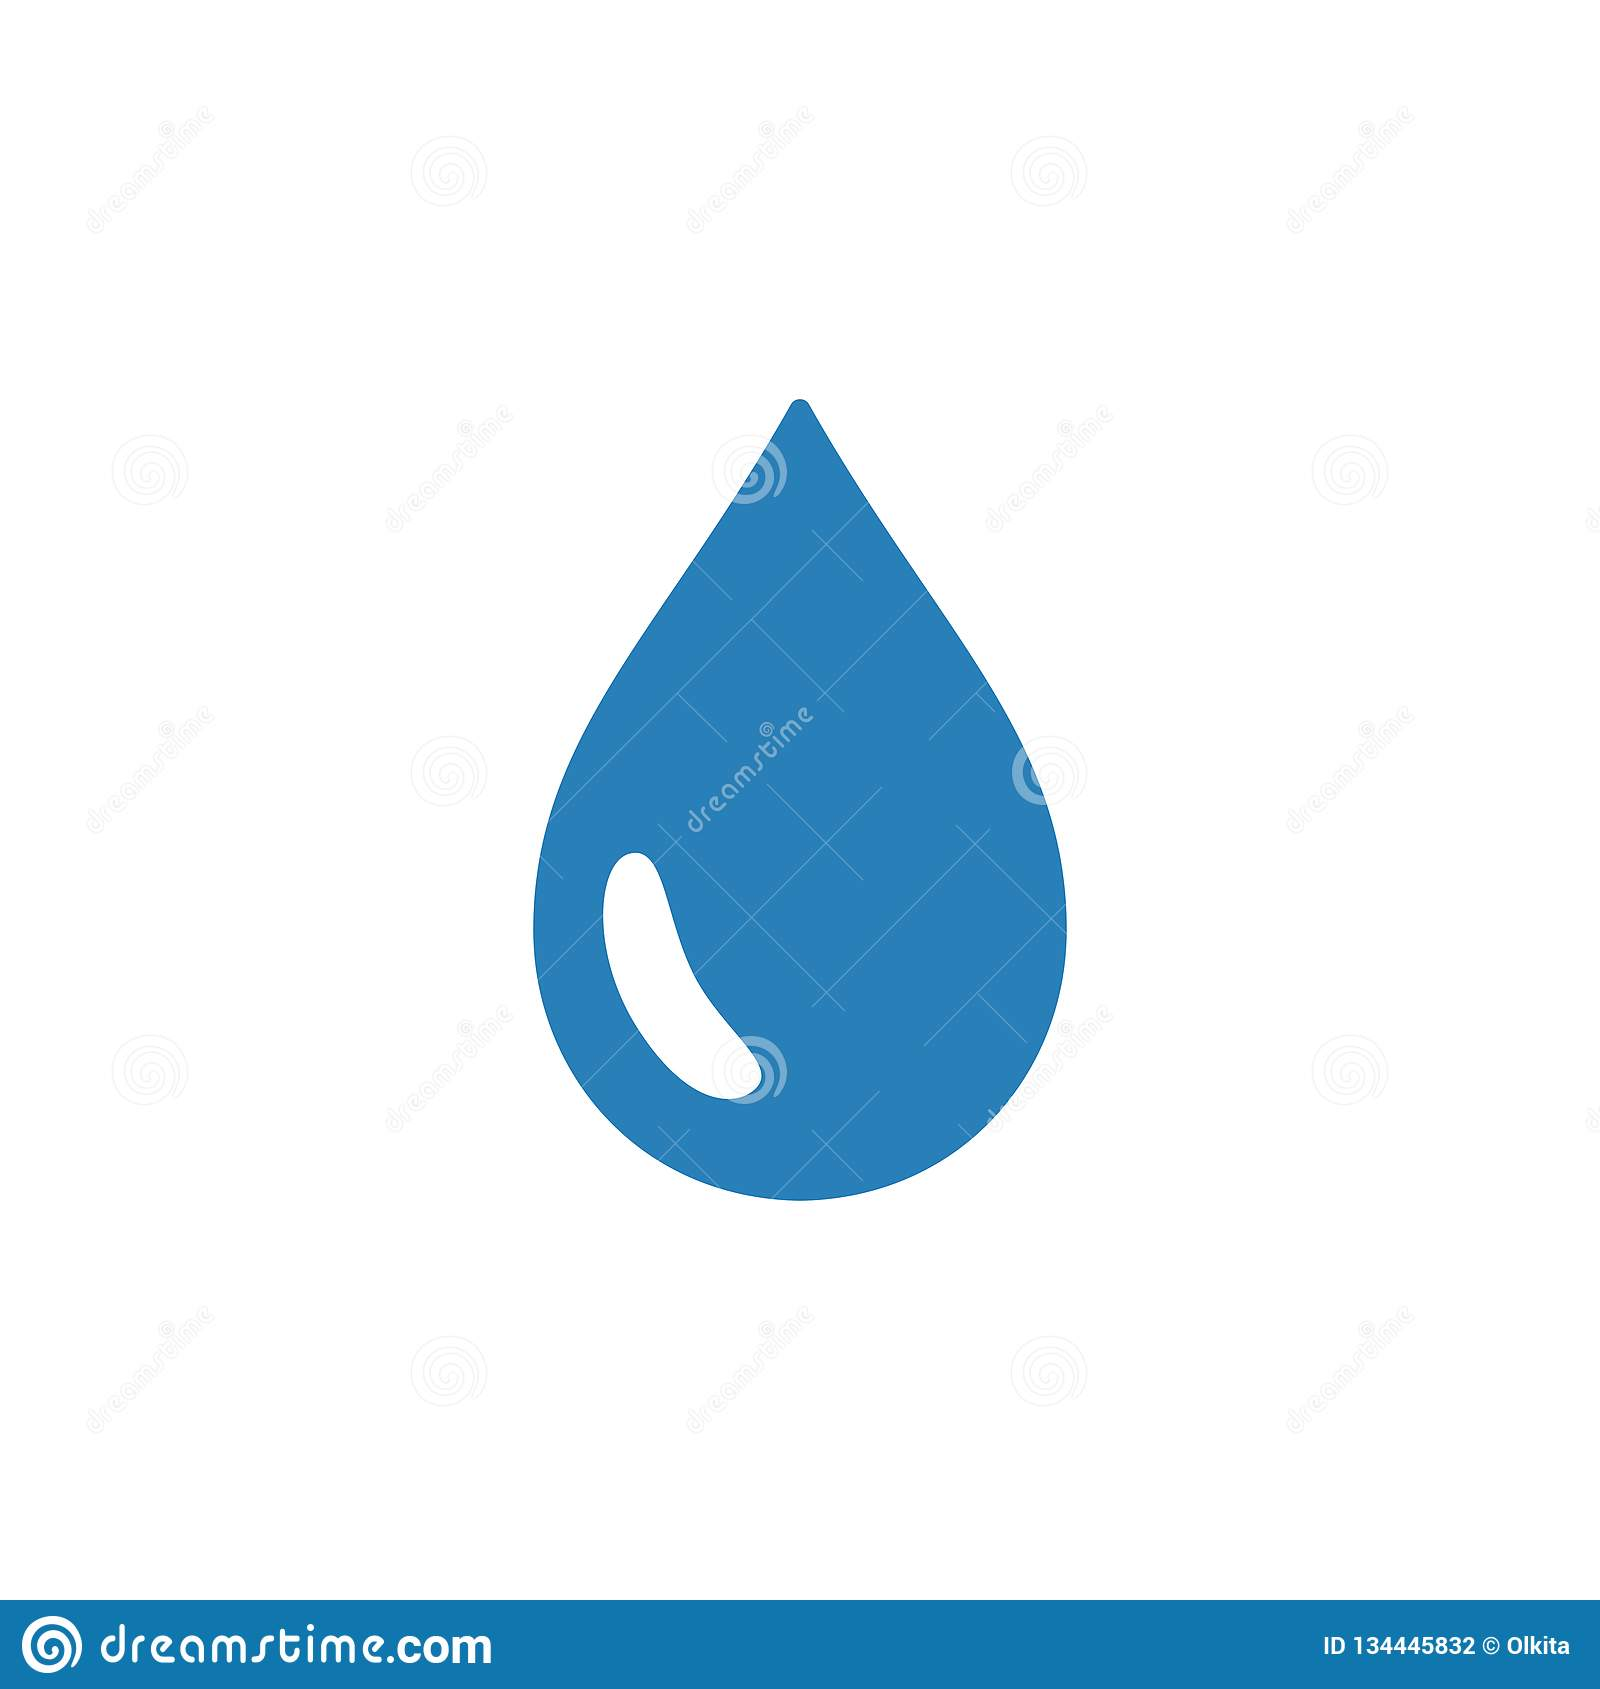 Blue isolated icon of drop of water on white background. Silhouette of aqua drop. Flat design